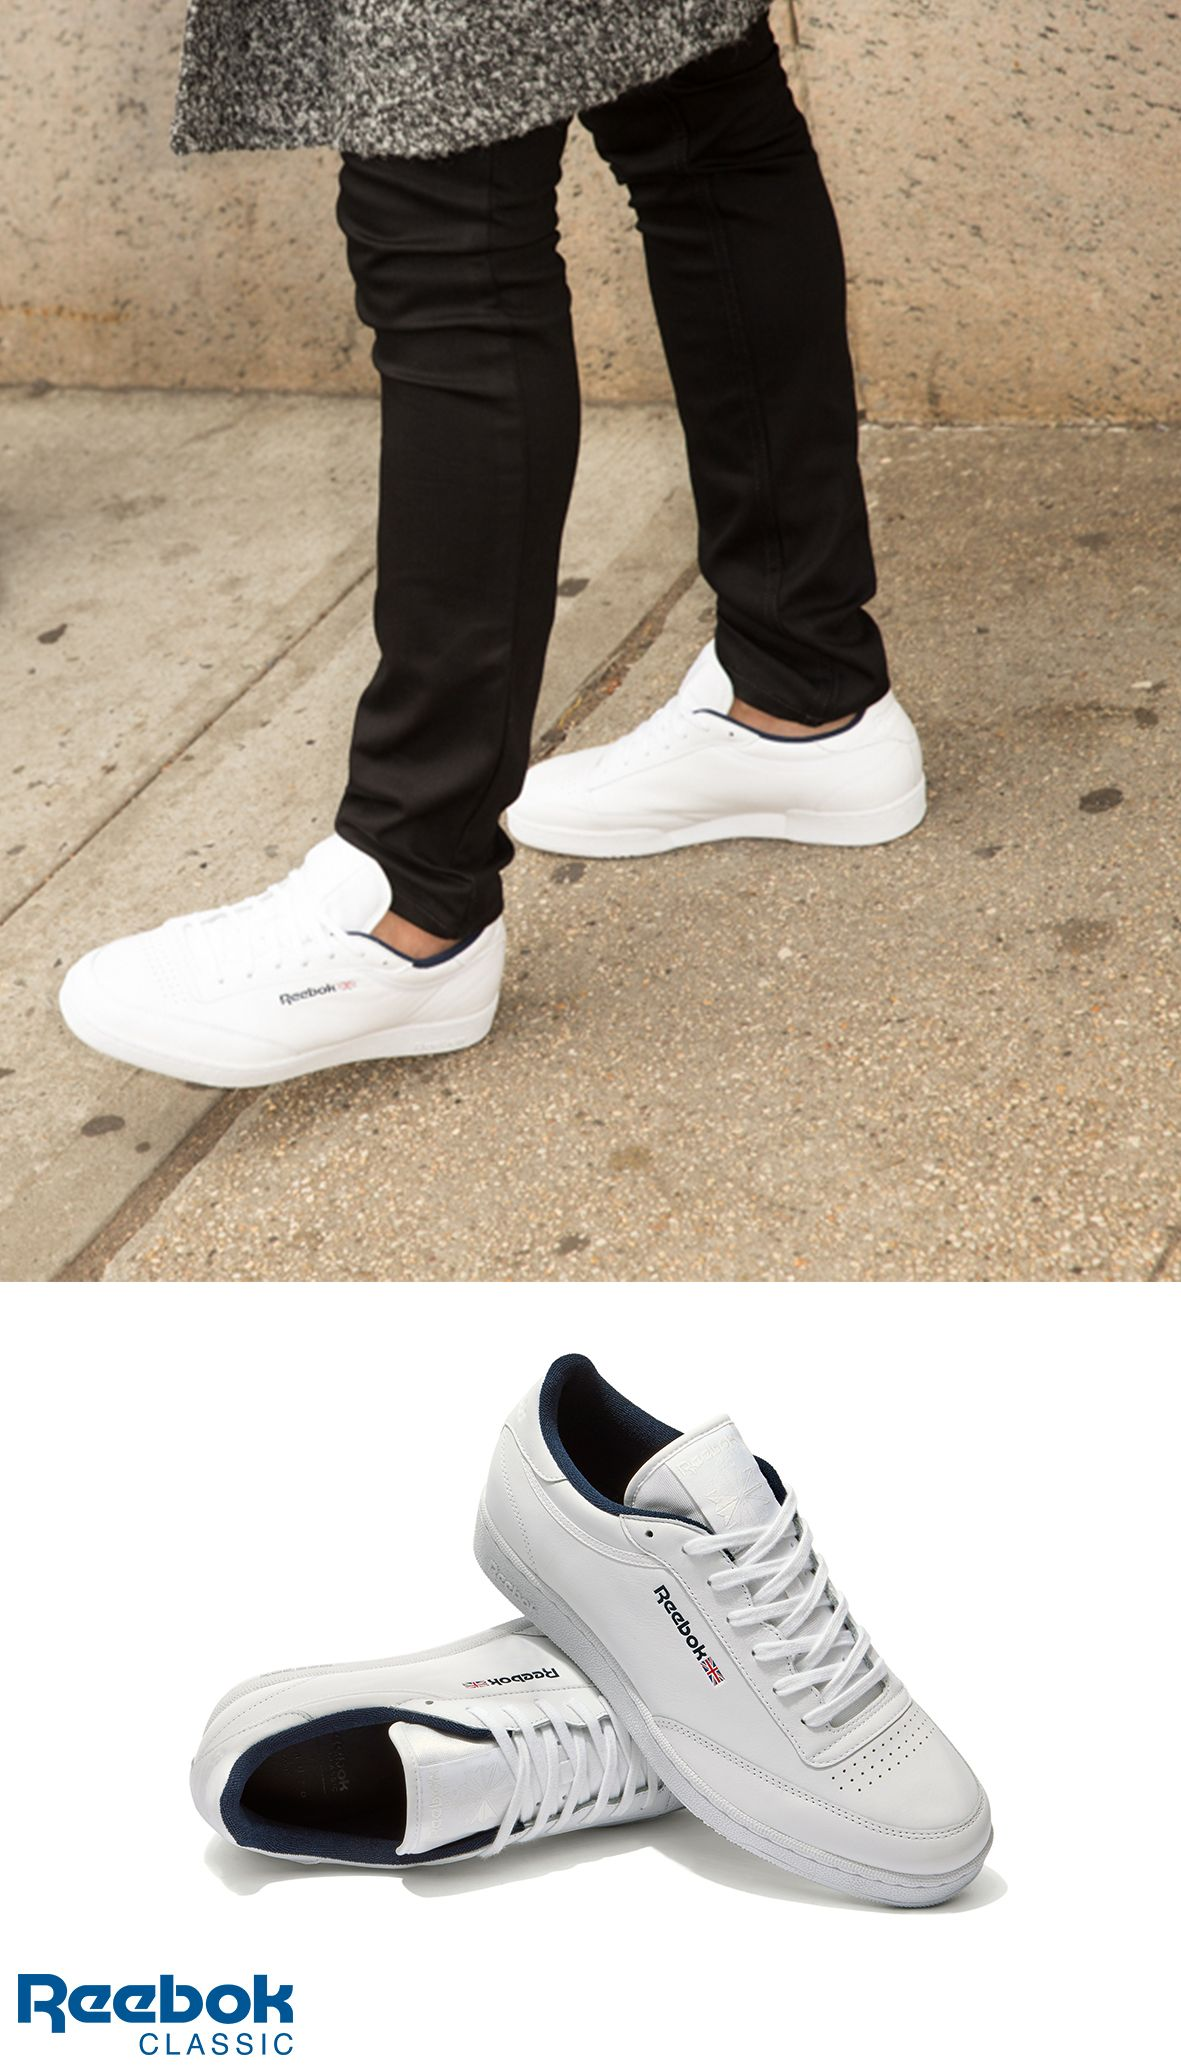 56caf0d9a1d Your new go-to sneaker. The Reebok X Sandro all white Club C men s shoe.